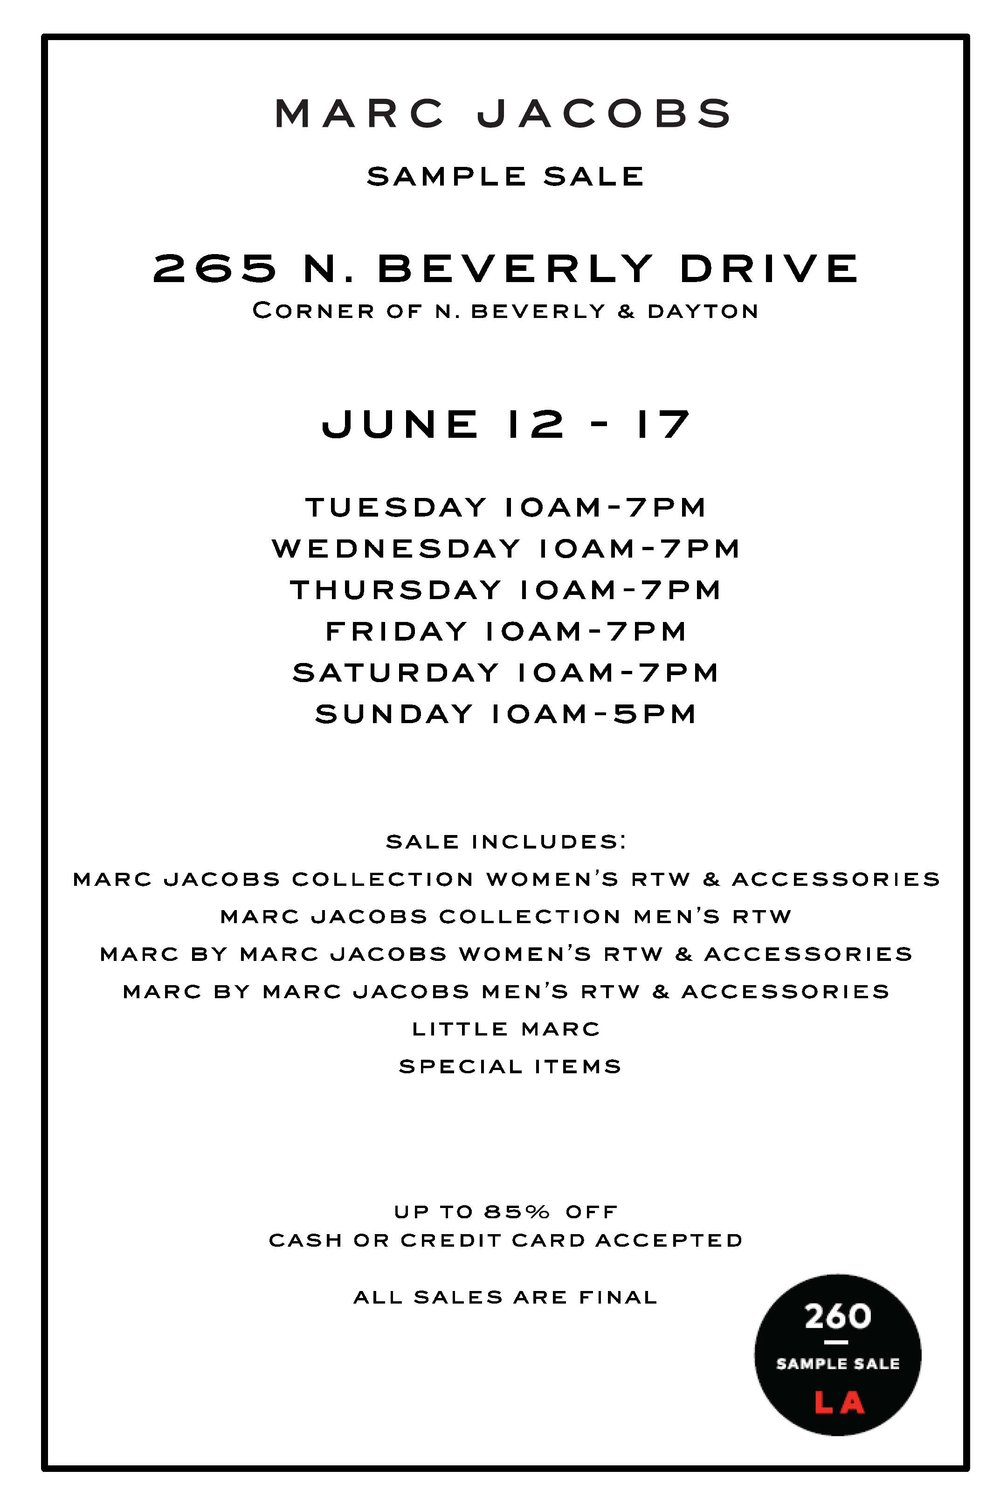 MJI - Sample Sale (public) LA.jpg